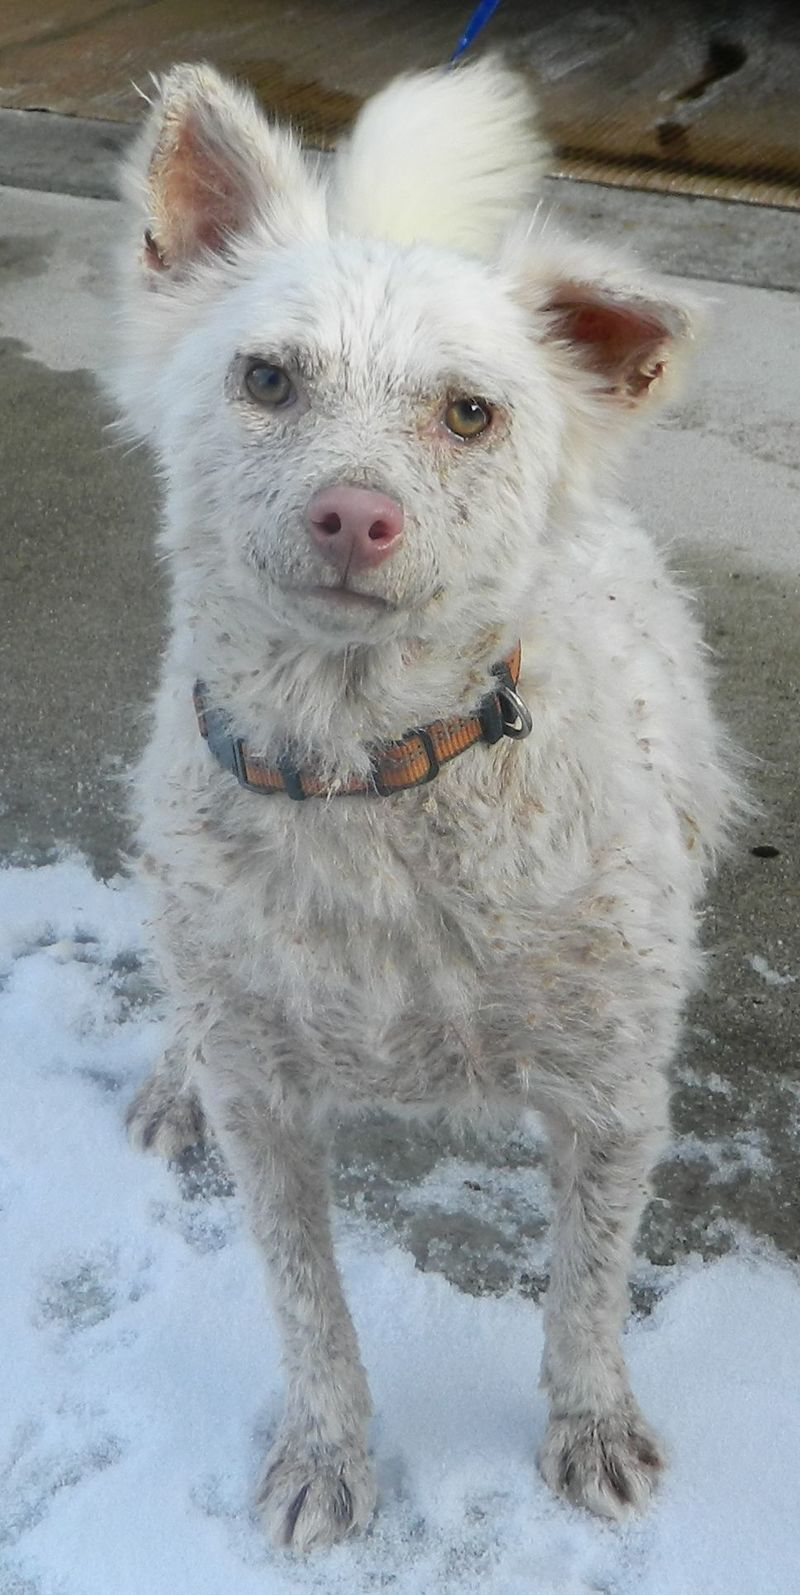 Ohio Small Dog Rescue Rossford Oh Kozie Needs A Kind Family To Look Past Her Scabs And Scales She Is A Happy Playfu Small Dog Rescue Rescue Dogs Animals